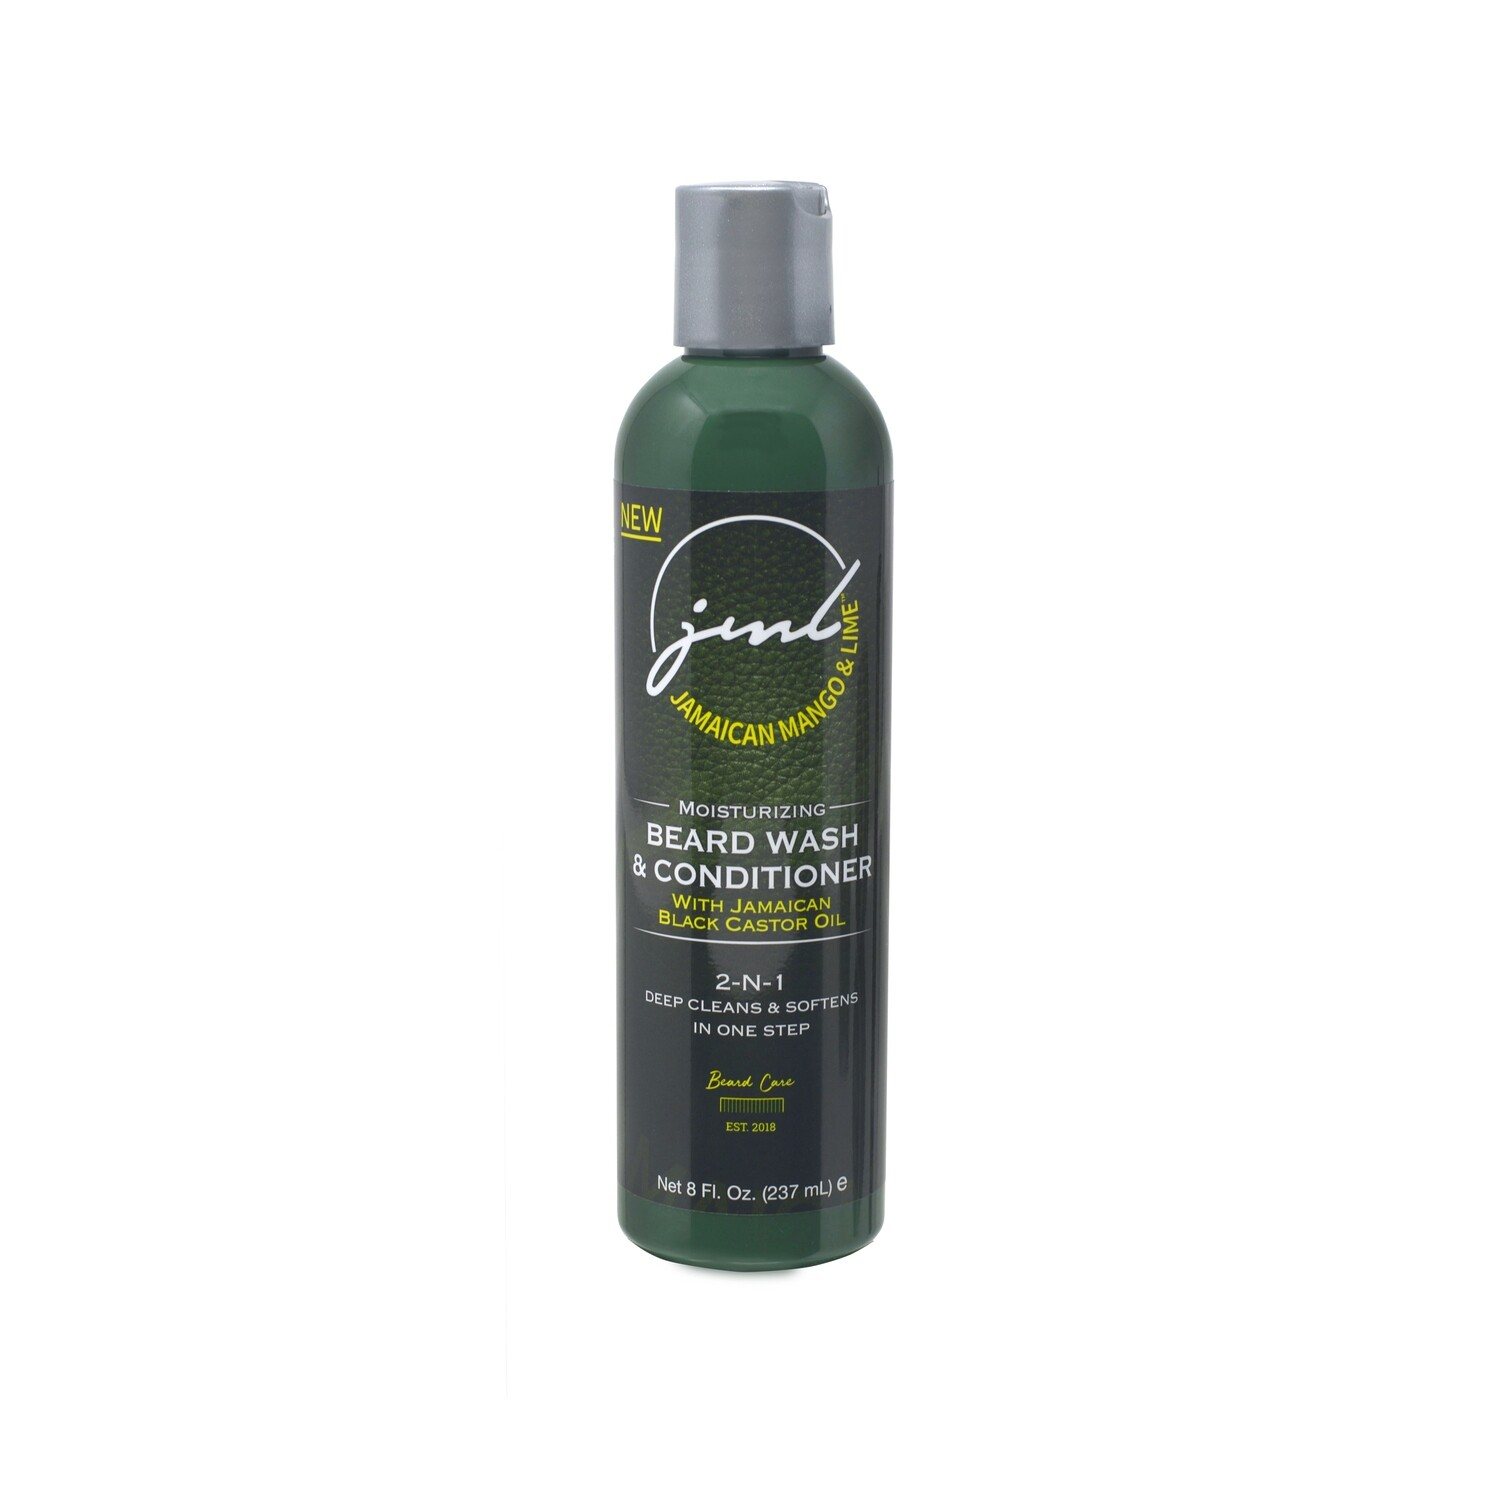 Jamaican Mango & Lime Beard Wash & Conditioner 8oz: $10.99